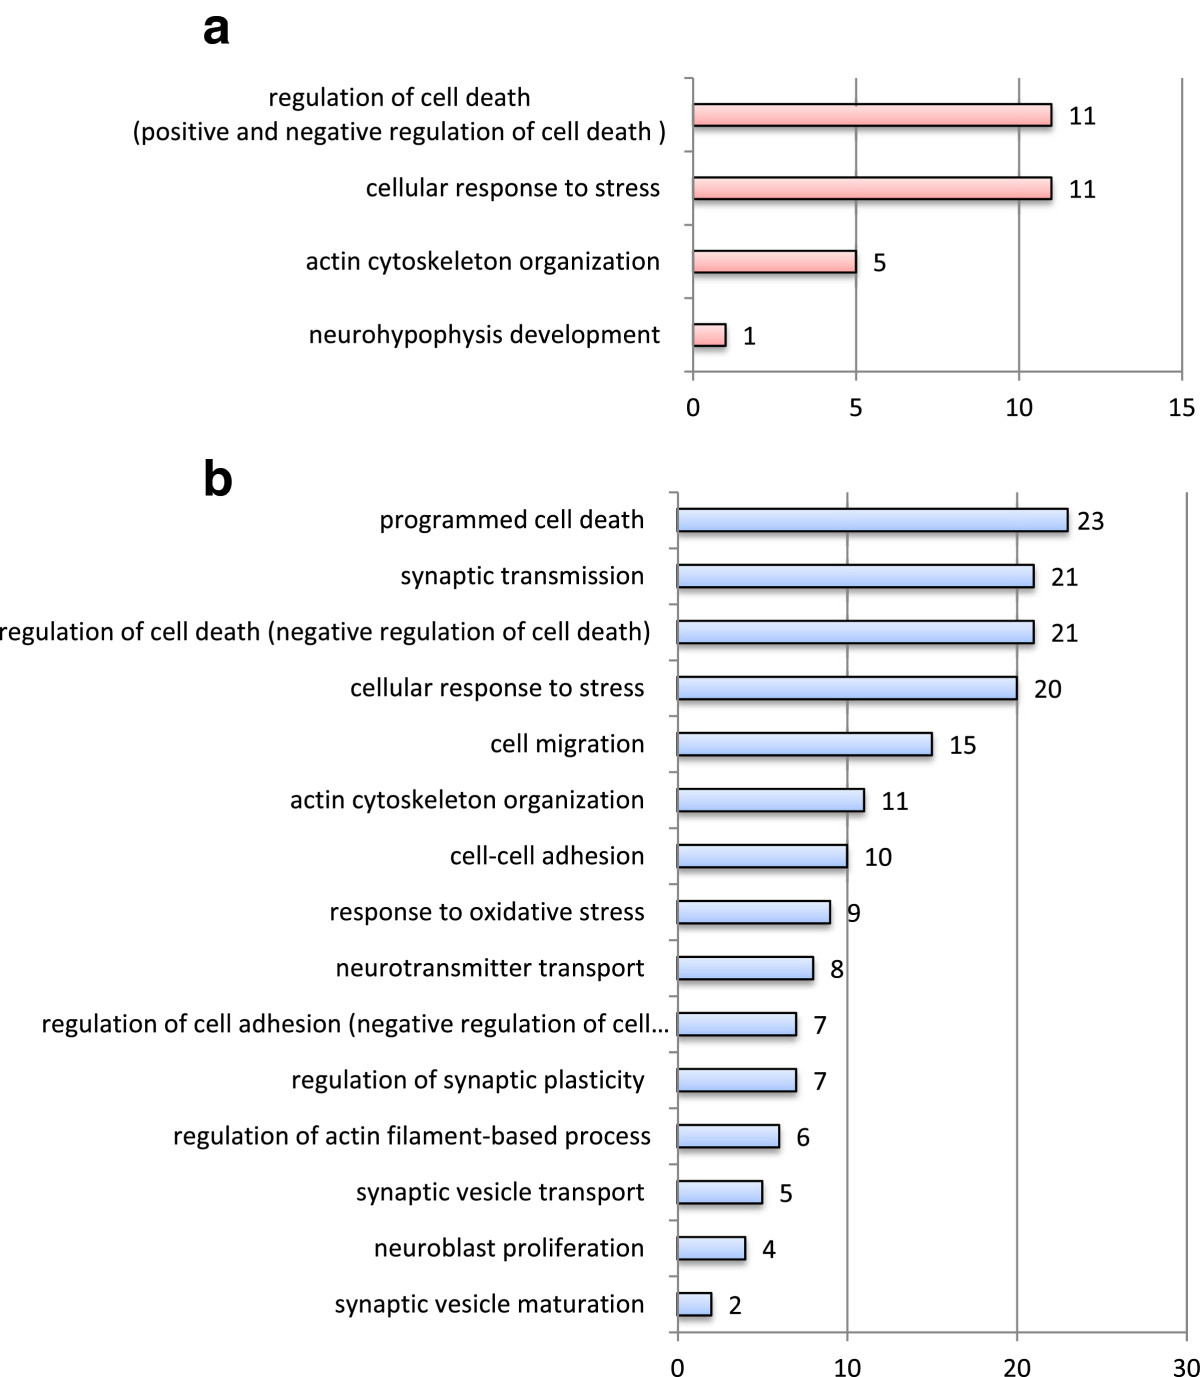 http://static-content.springer.com/image/art%3A10.1186%2F1479-7364-8-4/MediaObjects/40246_2013_Article_60_Fig3_HTML.jpg